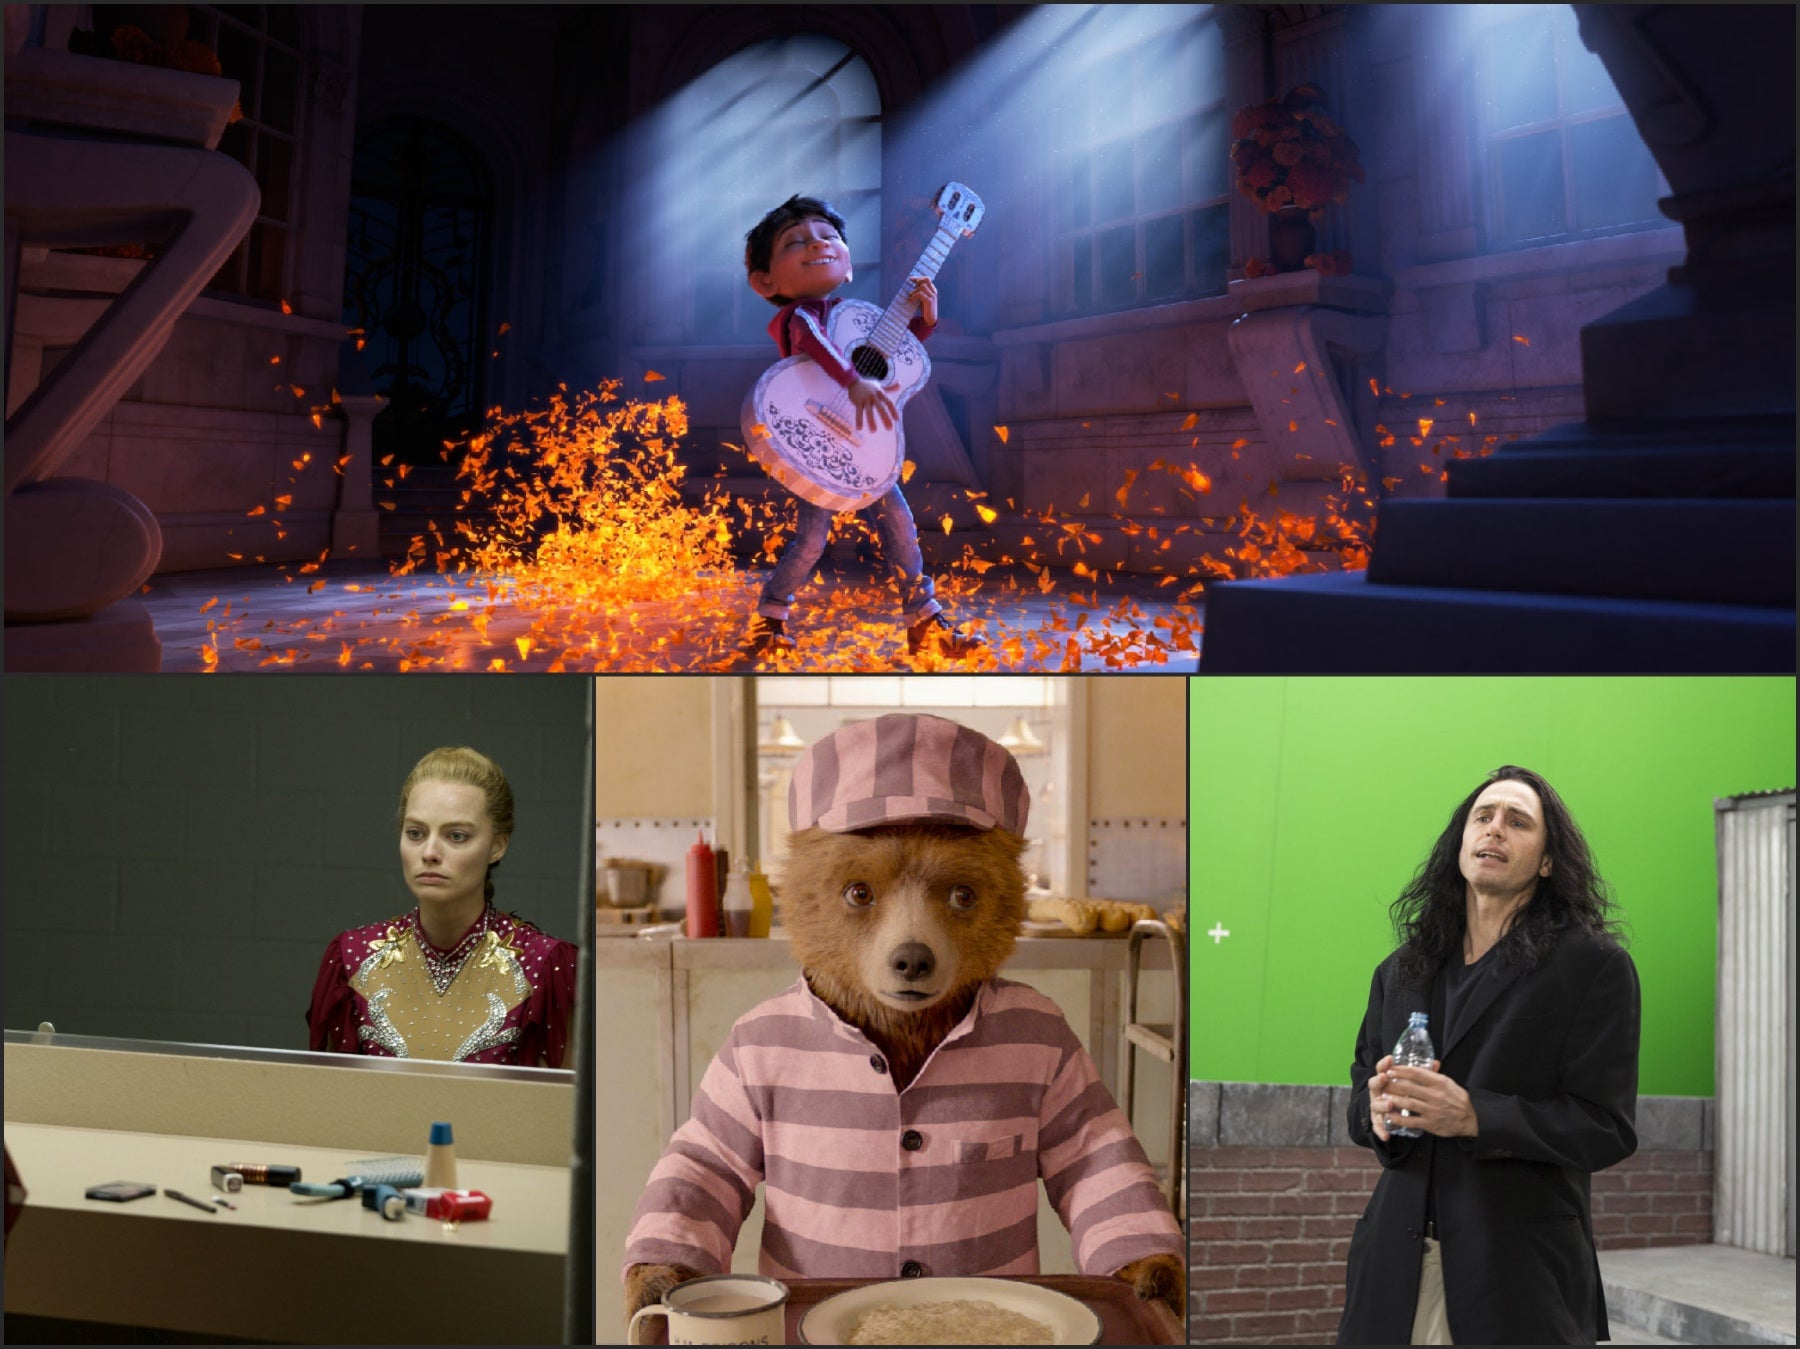 Scenes from the films Coco, The Disaster Artist, Paddngtom 2 and I, Tonya